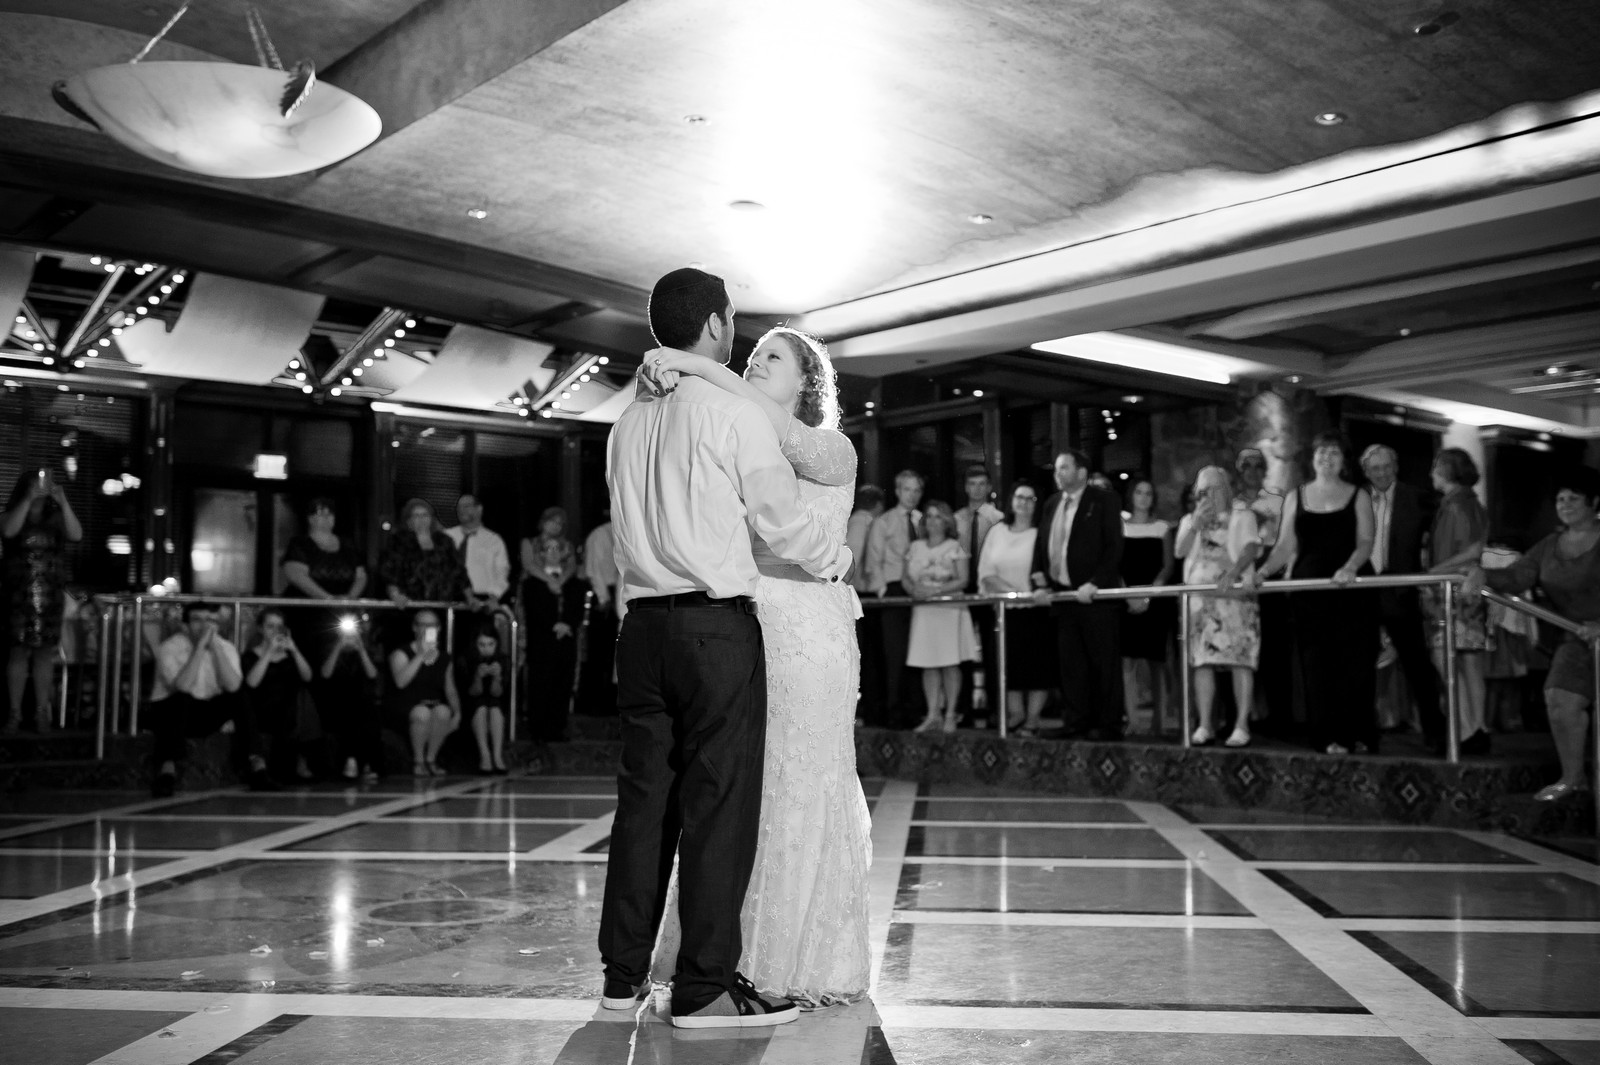 Sam and Yishai's Modern Orthodox Jewish Wedding at Crest Hollow Country Club, Woodbury NY, Photos by Chaim Schvarcz, Bride, Groom, First Dance